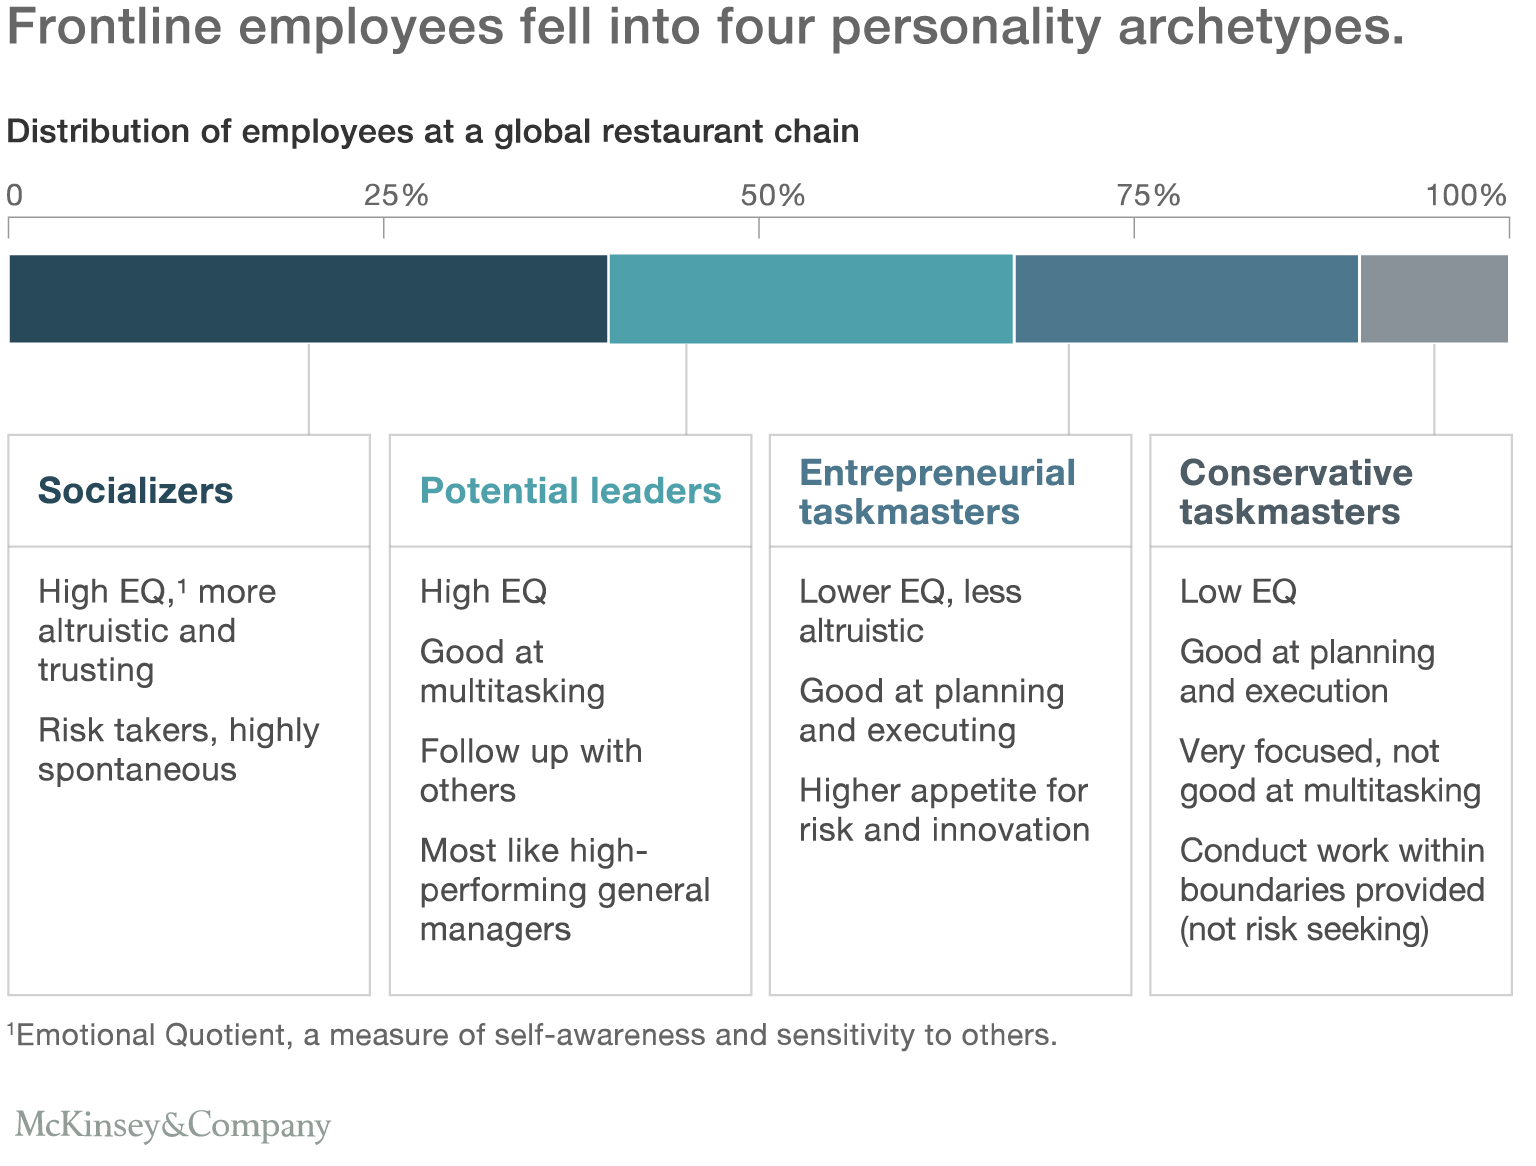 Frontline employees fell into four personality archetypes.